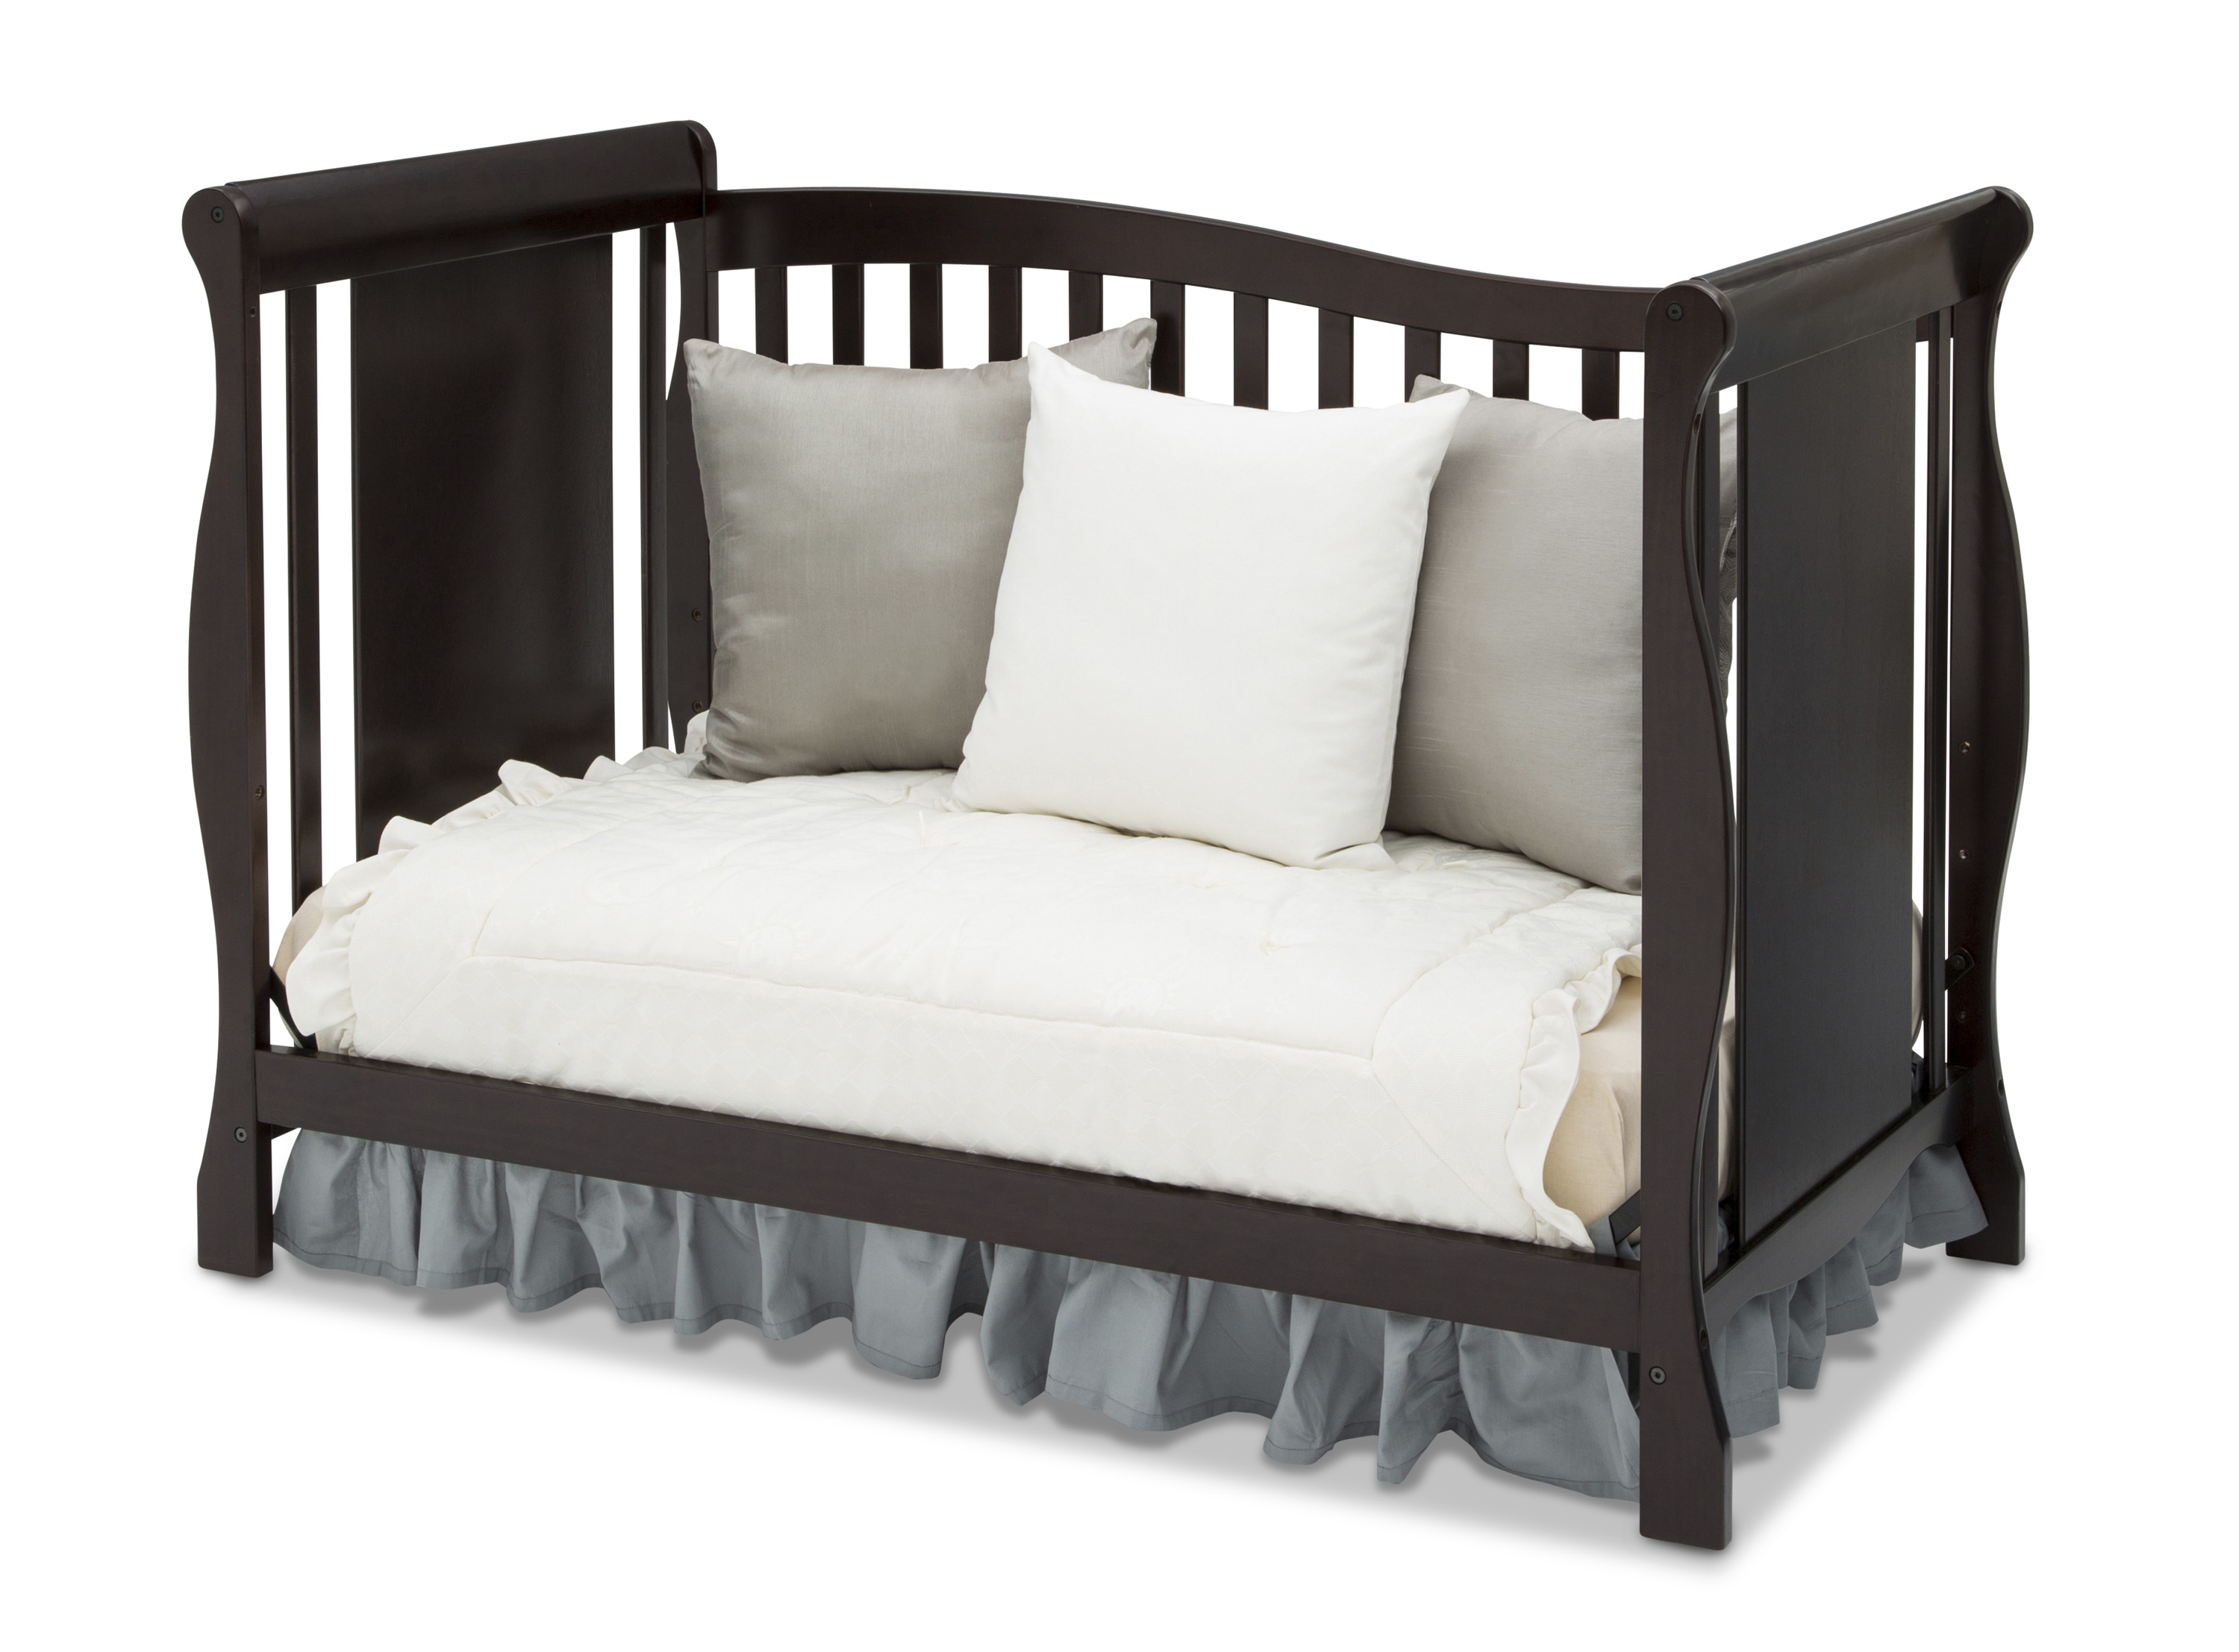 graco bedroom bassinet sienna. delta children brookside 4 in 1 convertible crib dark chocolate b1d44b5f 87af 4884 97a9 644f62cb3526 graco bedroom bassinet sienna